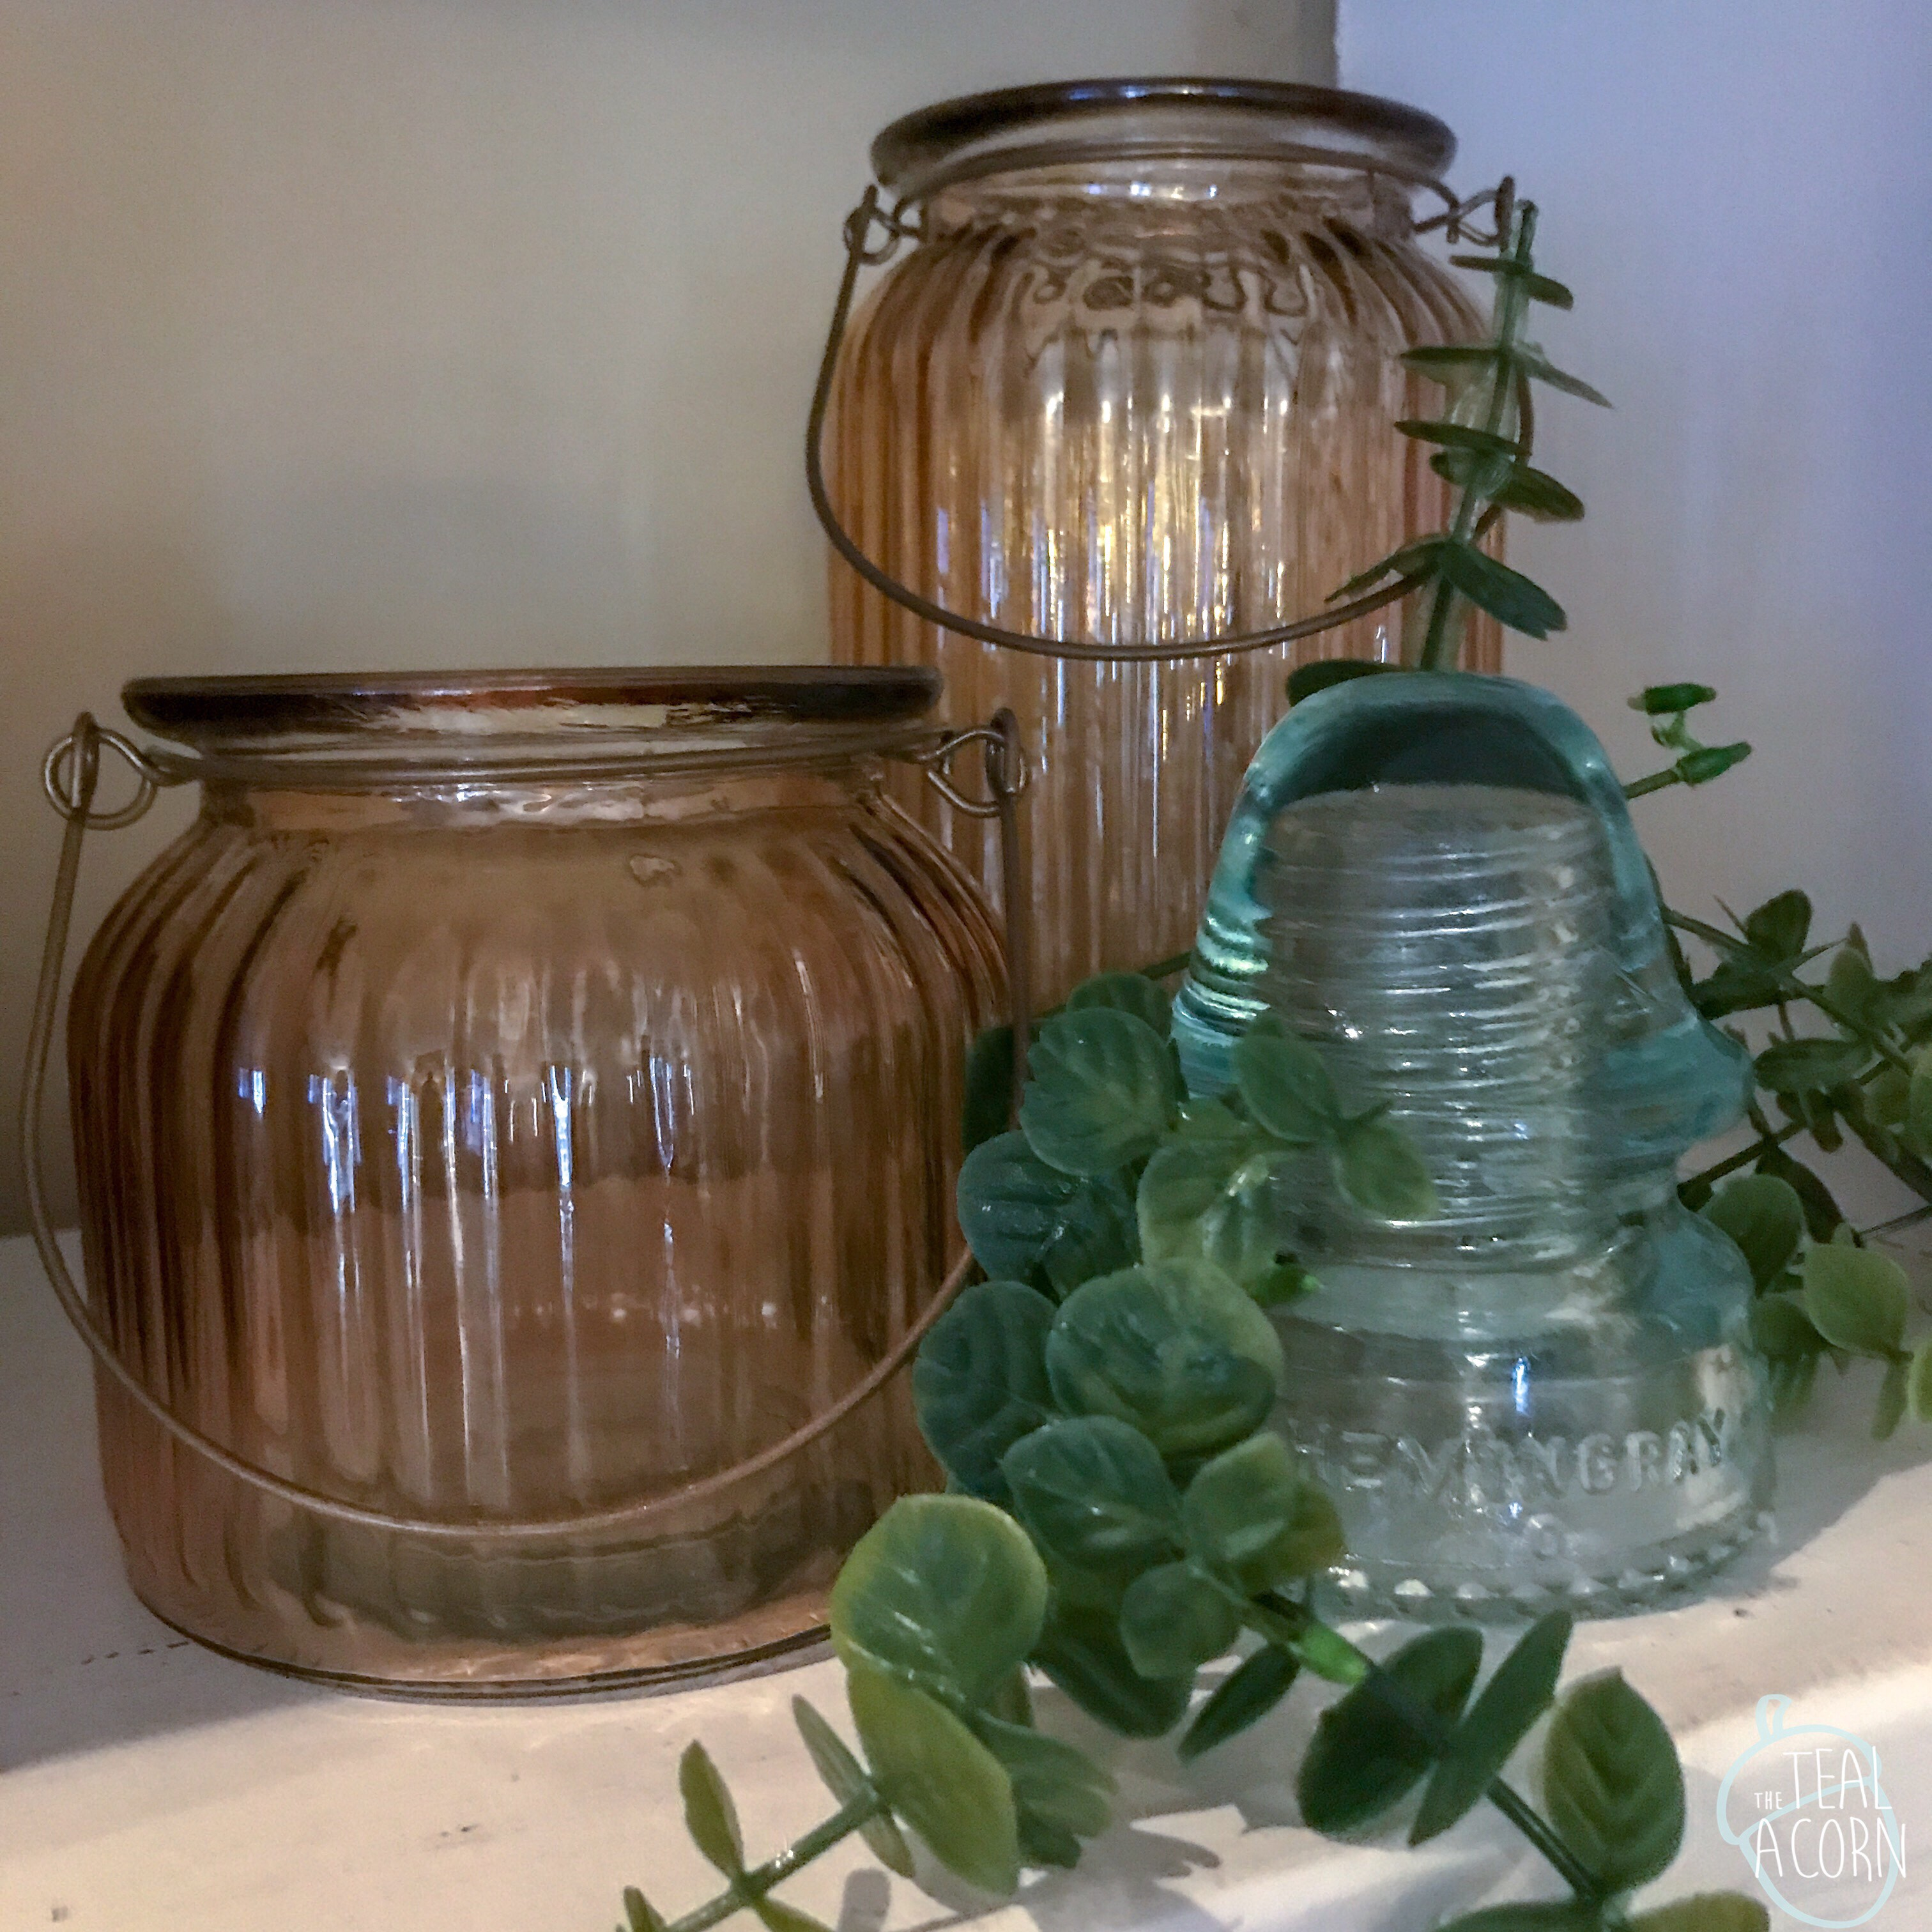 orange glass jars and old electrical insulator vignette decor